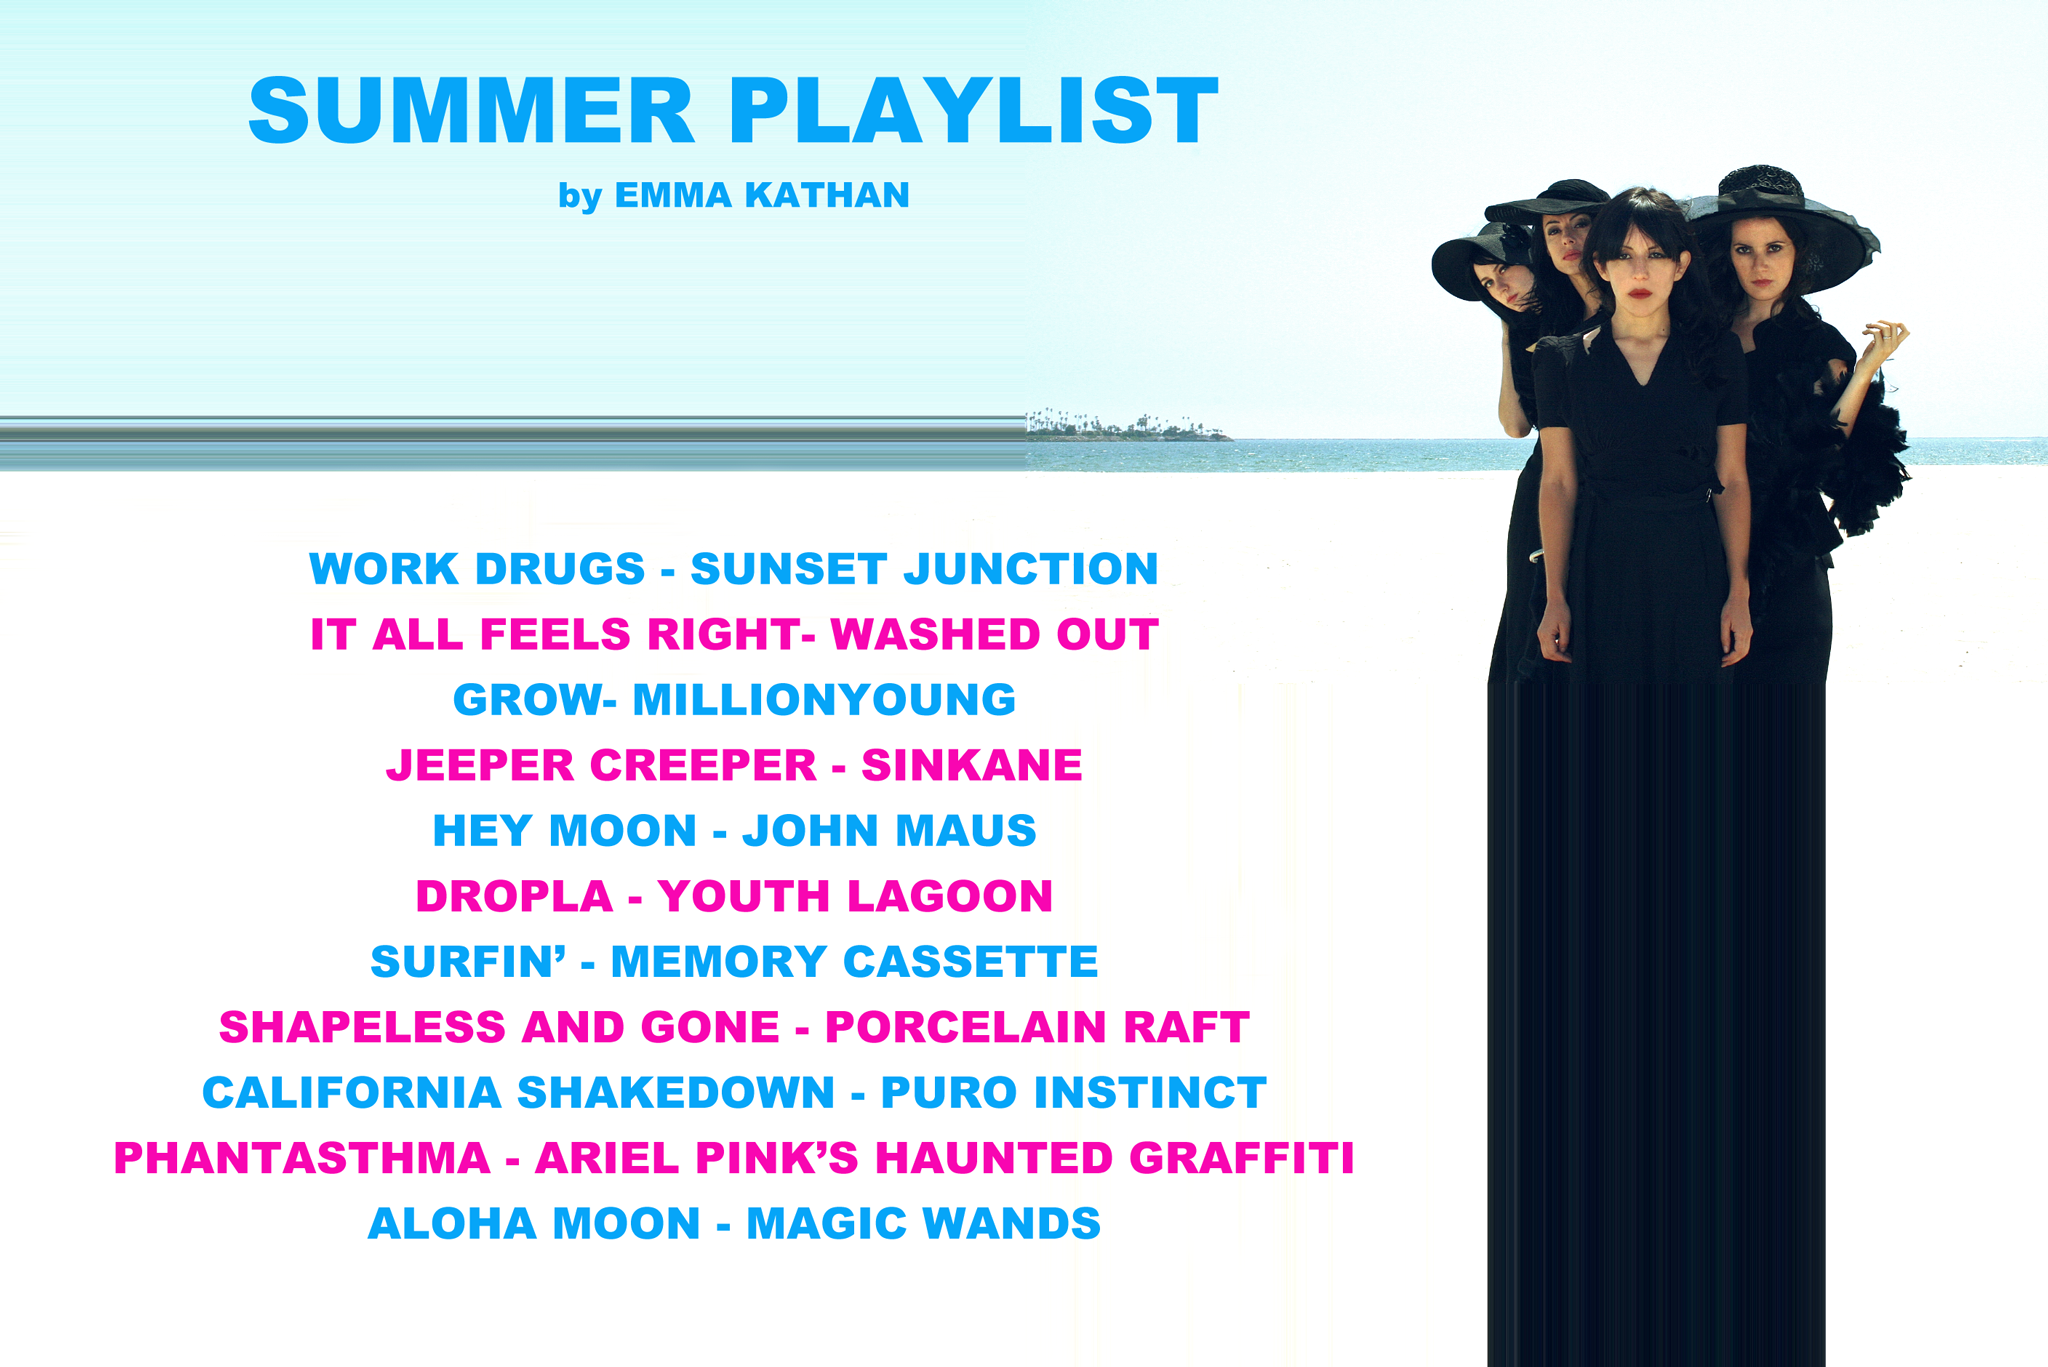 Emma Kathan Summer Playlist